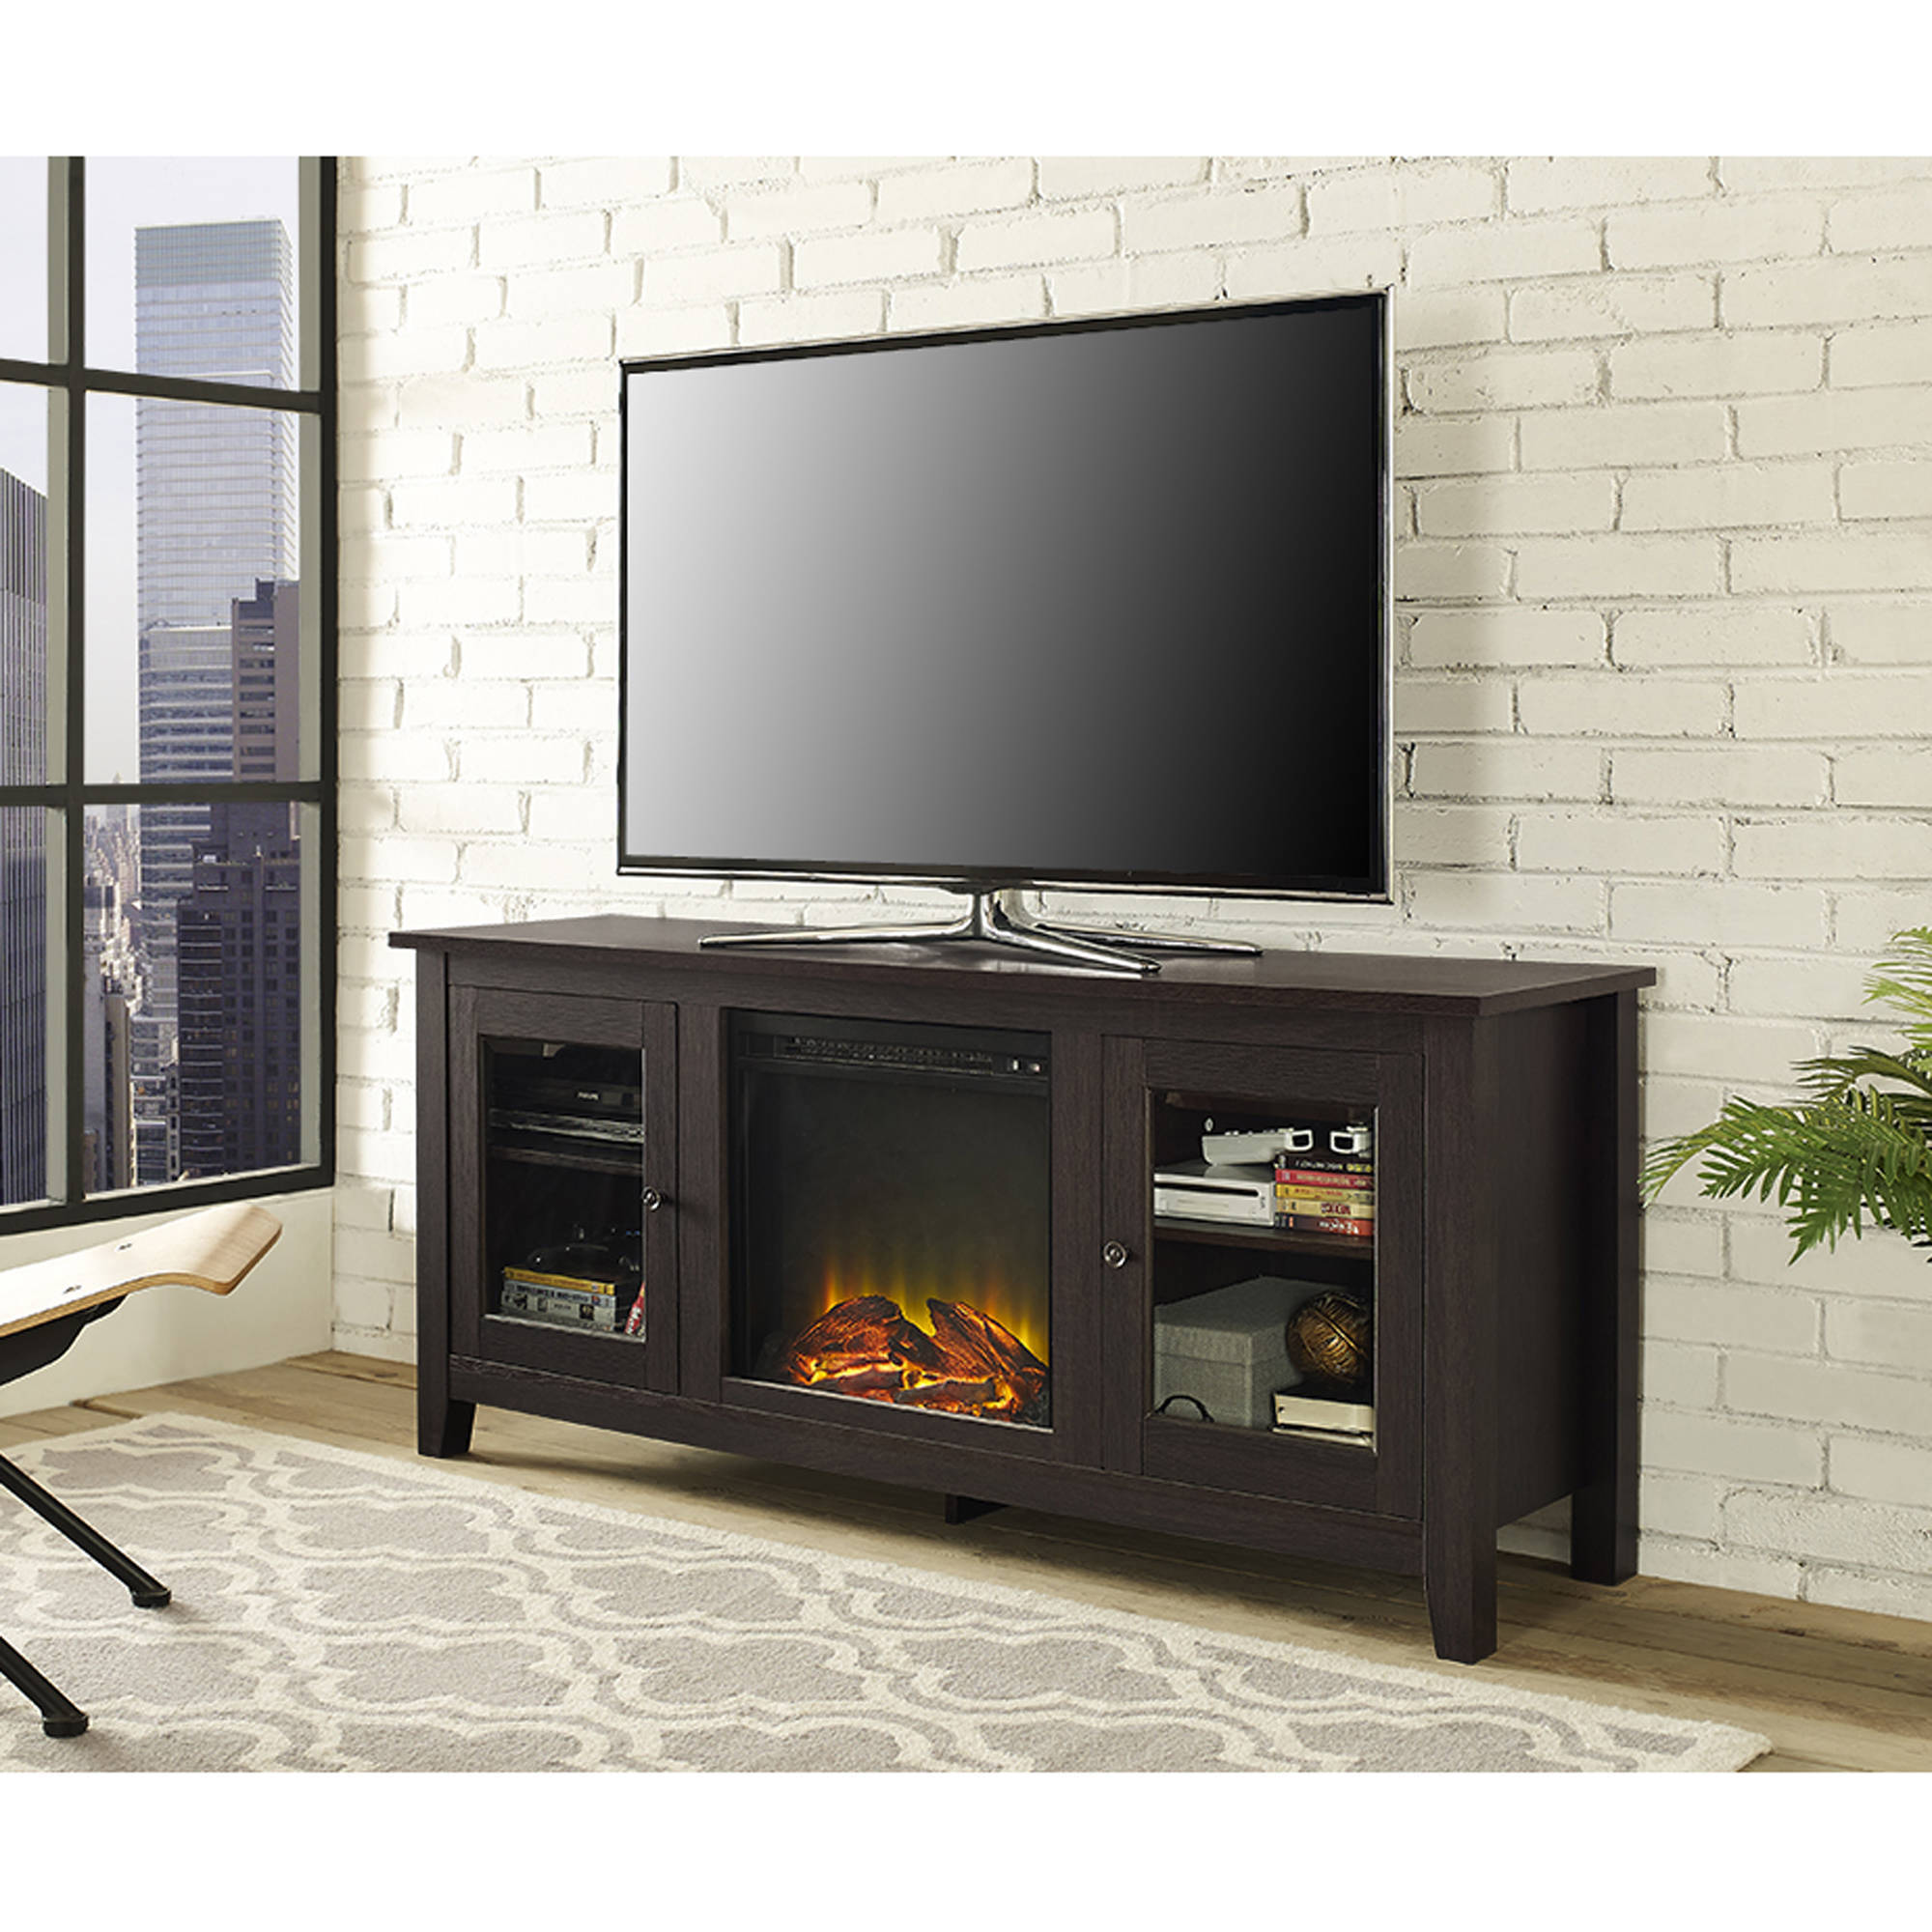 Wood Tv Stand With Fireplace For Tvs Up